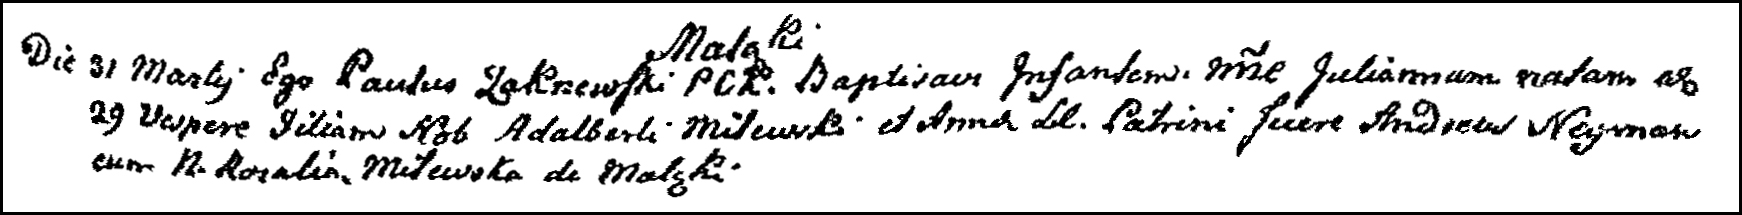 The Birth and Baptismal Record of Julianna Milewska - 1788